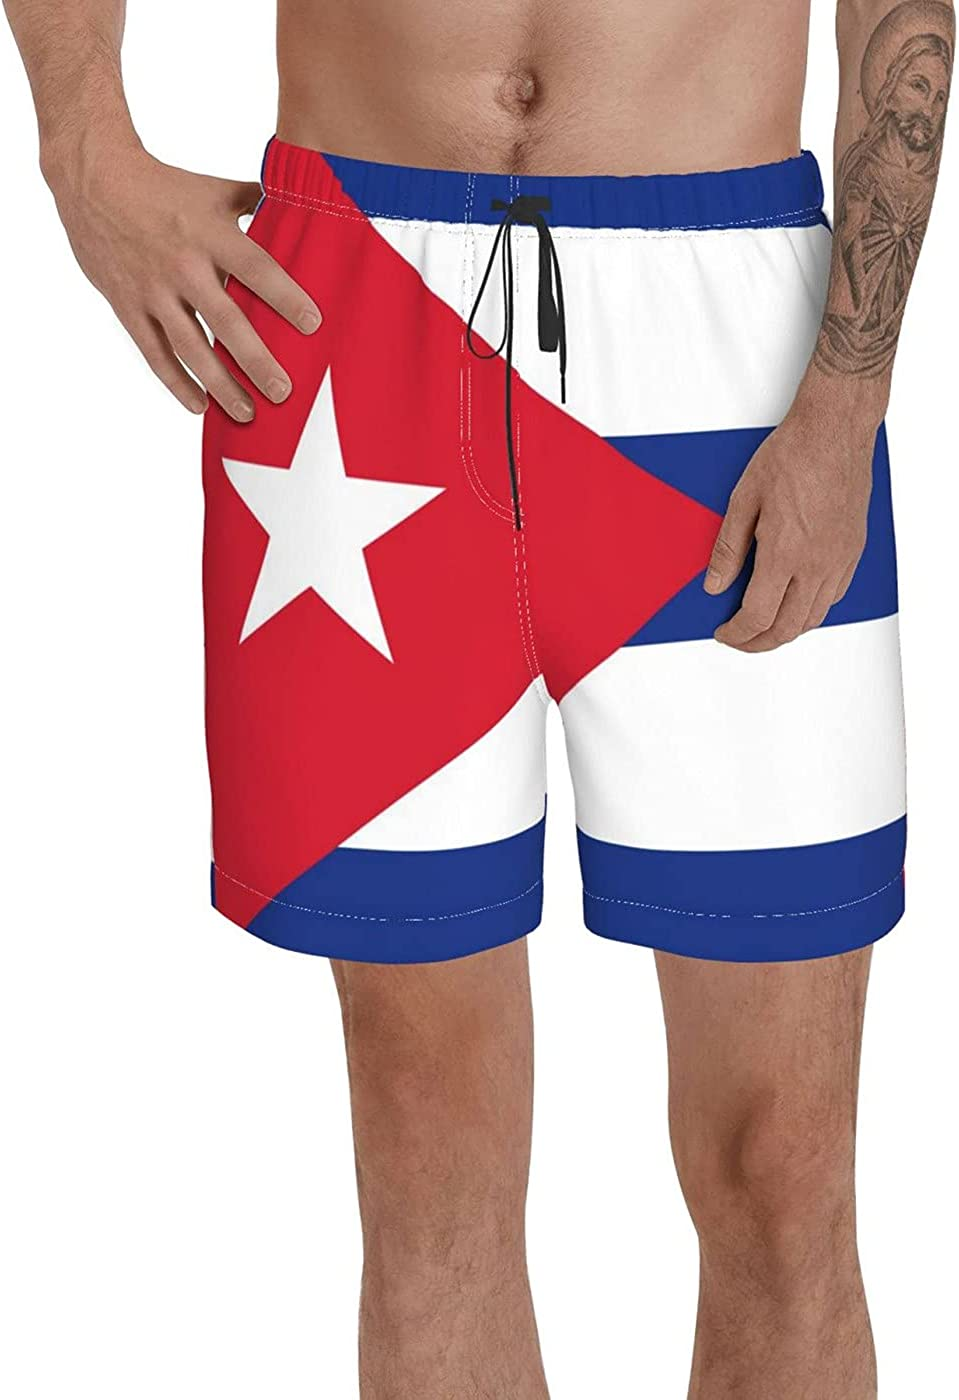 Count Cuba Flag Men's 3D Printed Funny Summer Quick Dry Swim Short Board Shorts with